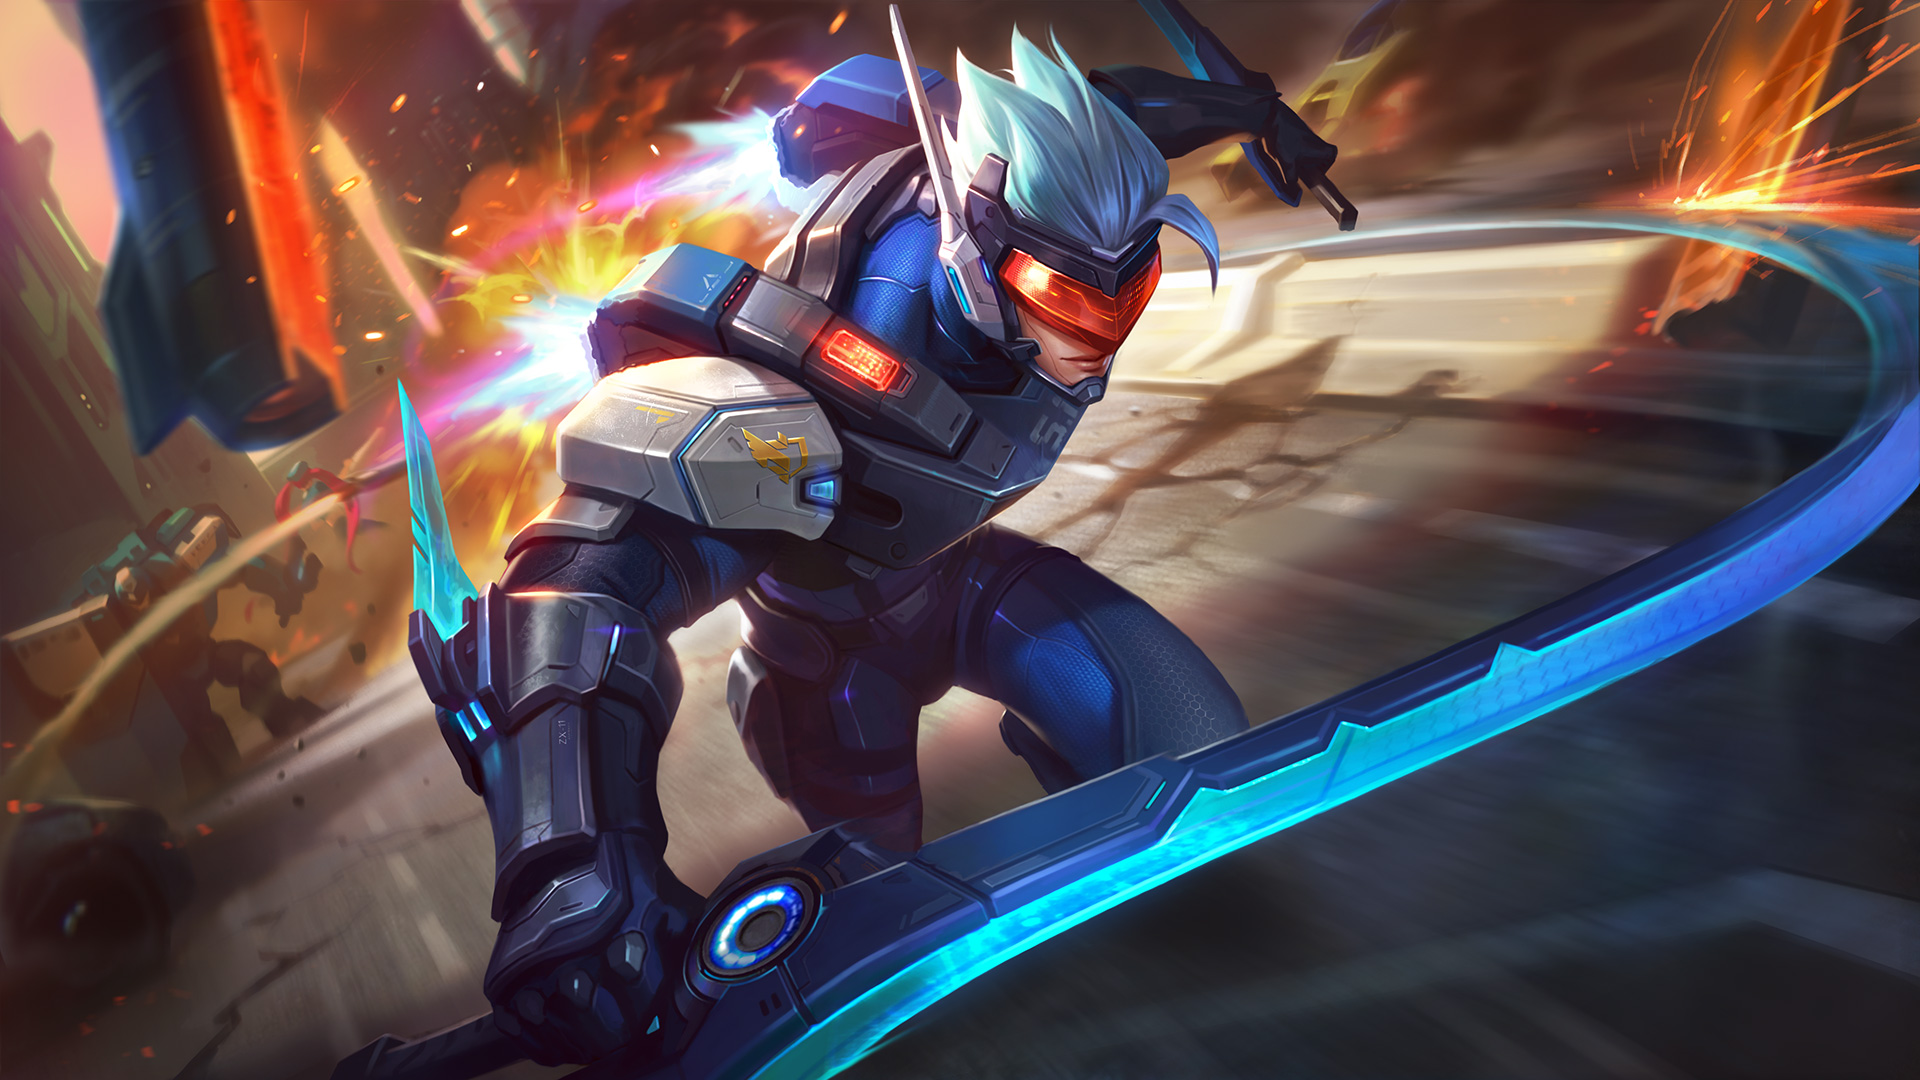 Wallpapers Saber Mobile Legends free for smartphones android, pc, iphone, and apple.